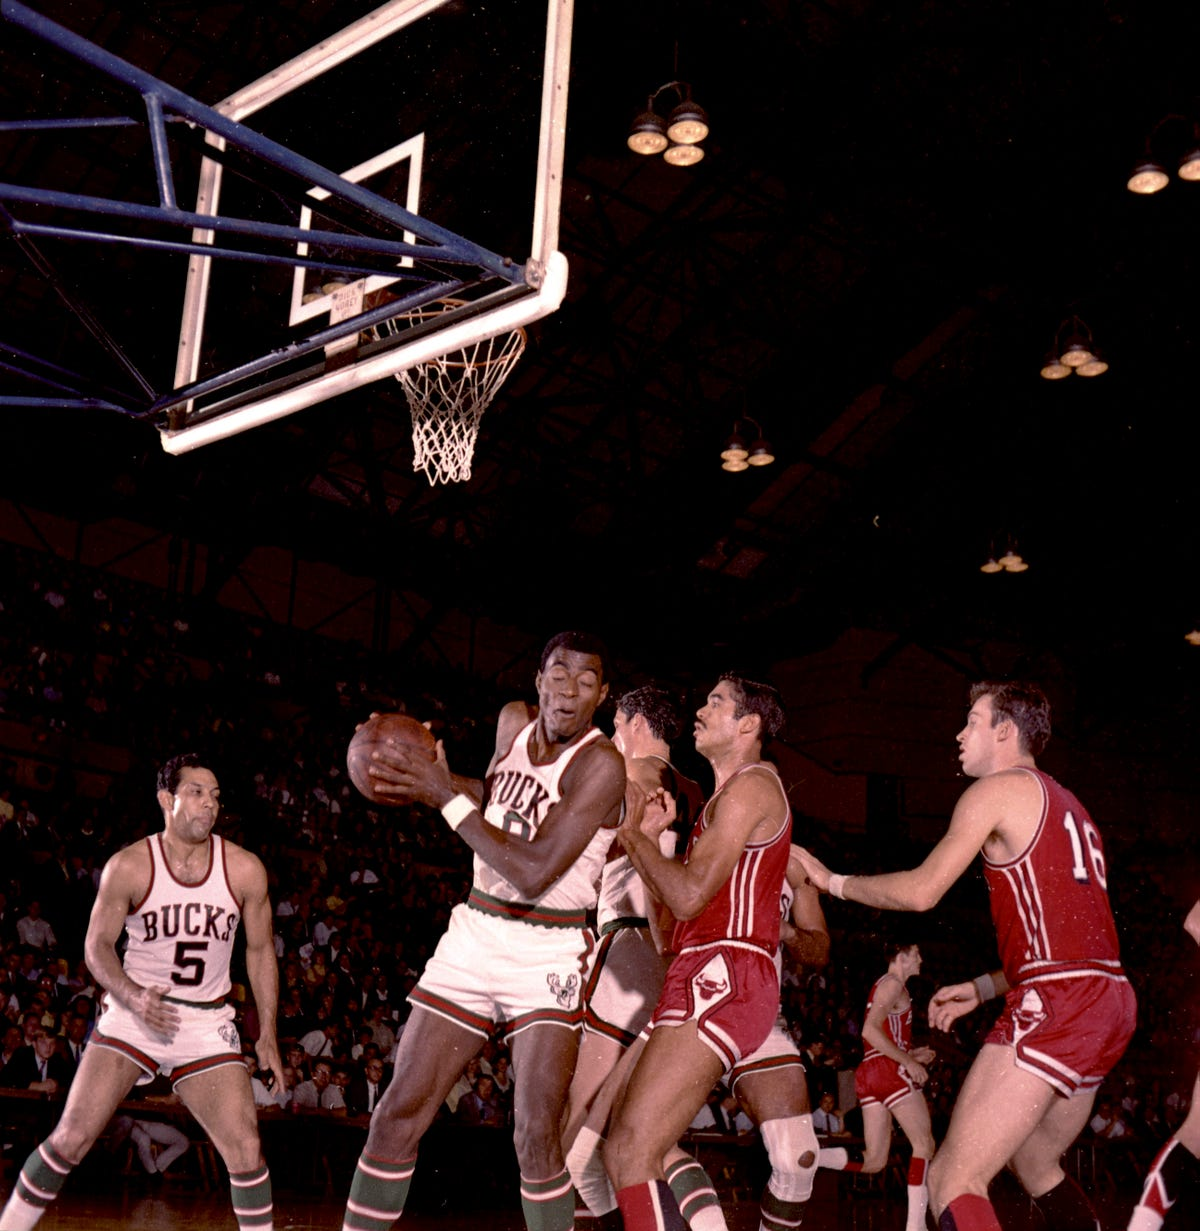 de7be1af When the Bucks took the court for their first game, captured in color